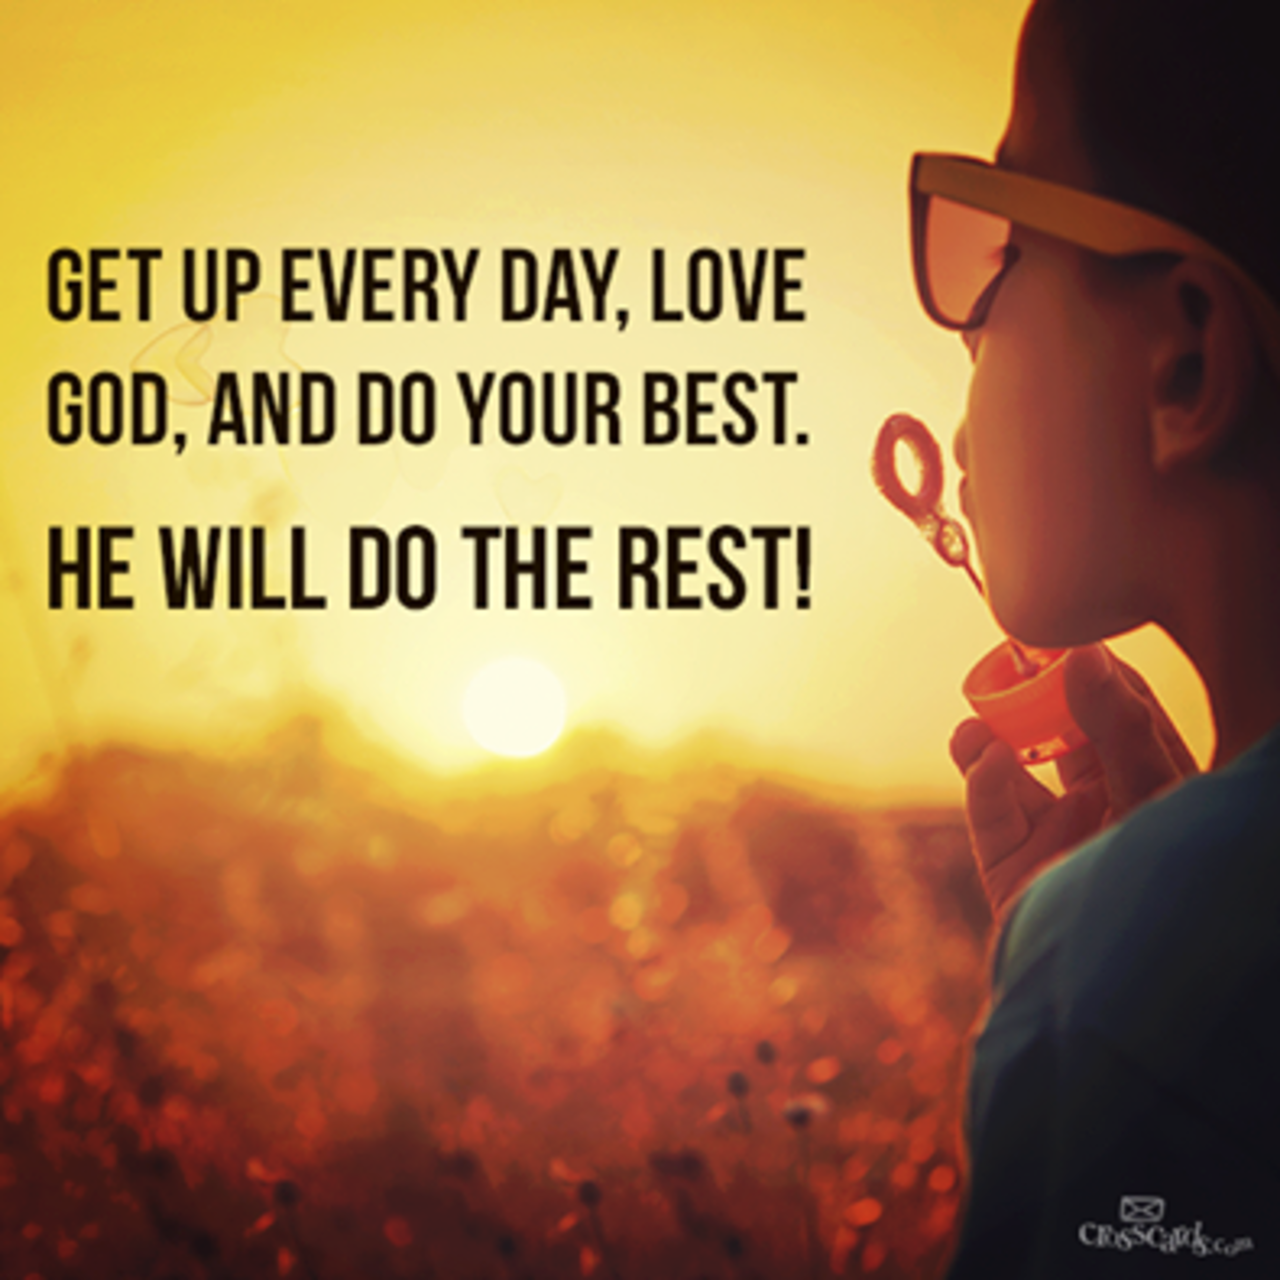 Get up every day, Love God and do your best! HE WILL DO